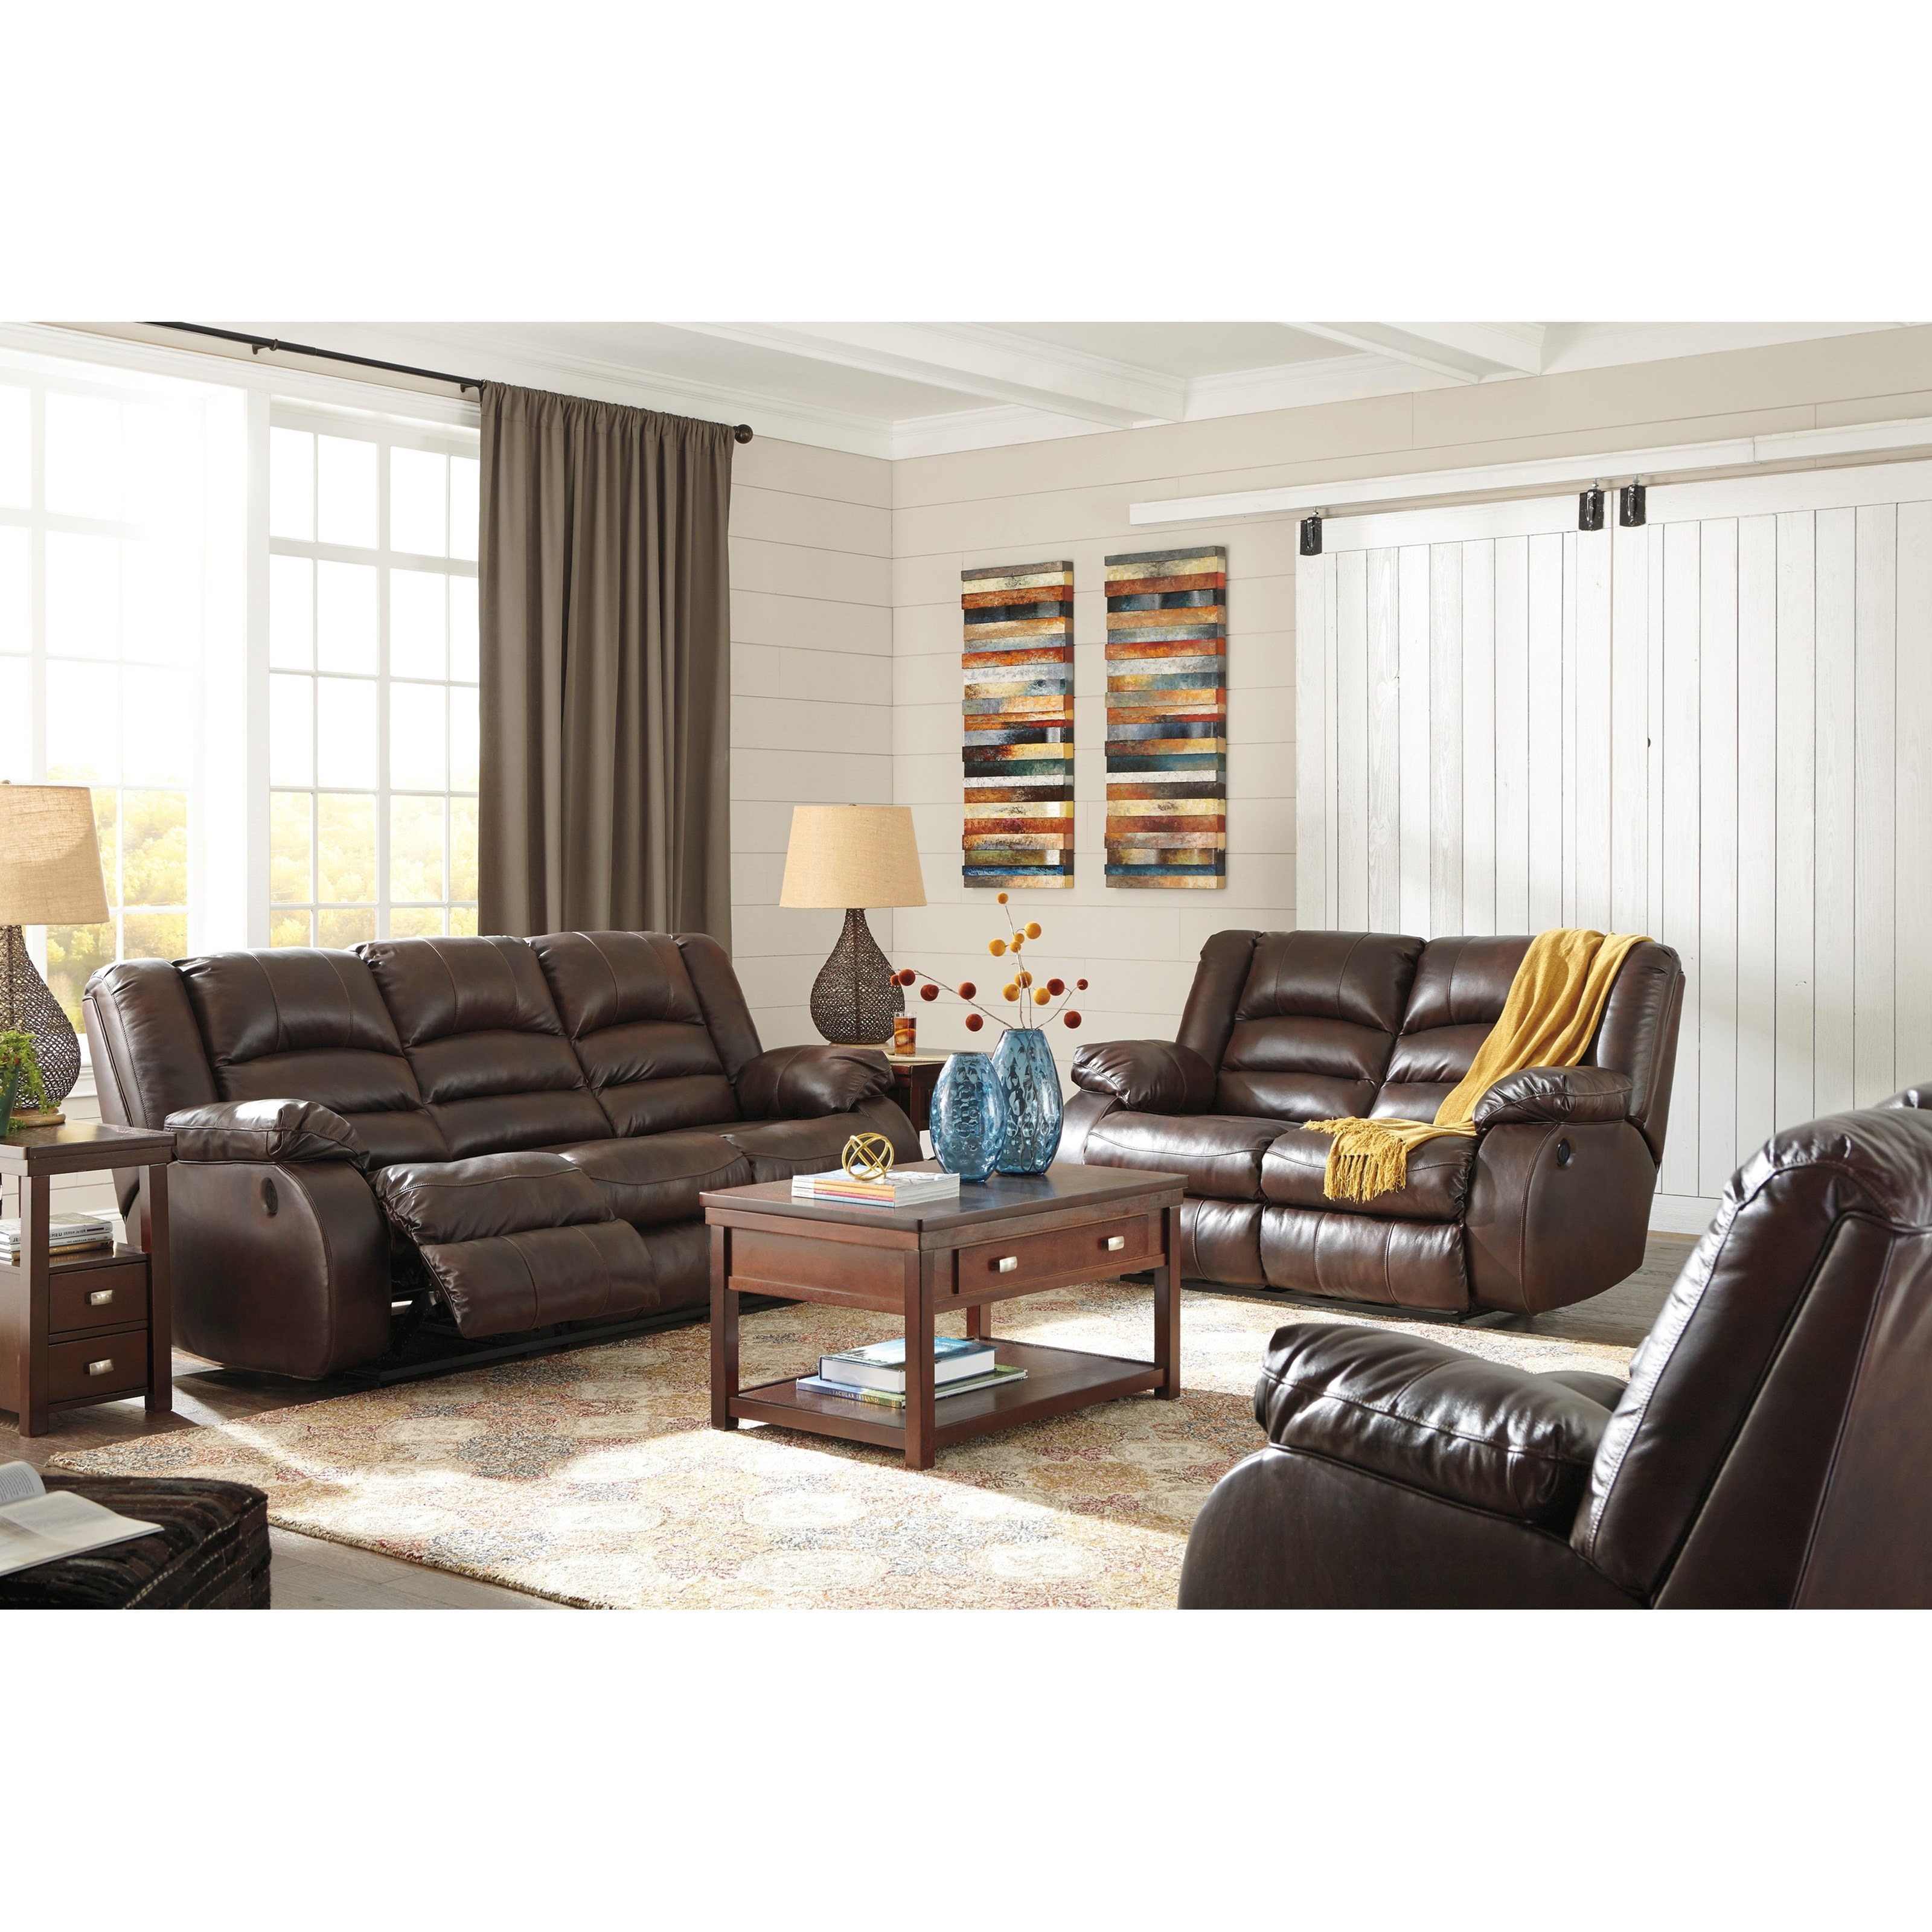 Signature Design By Ashley Levelland Reclining Living Room Group Rotmans Reclining Living